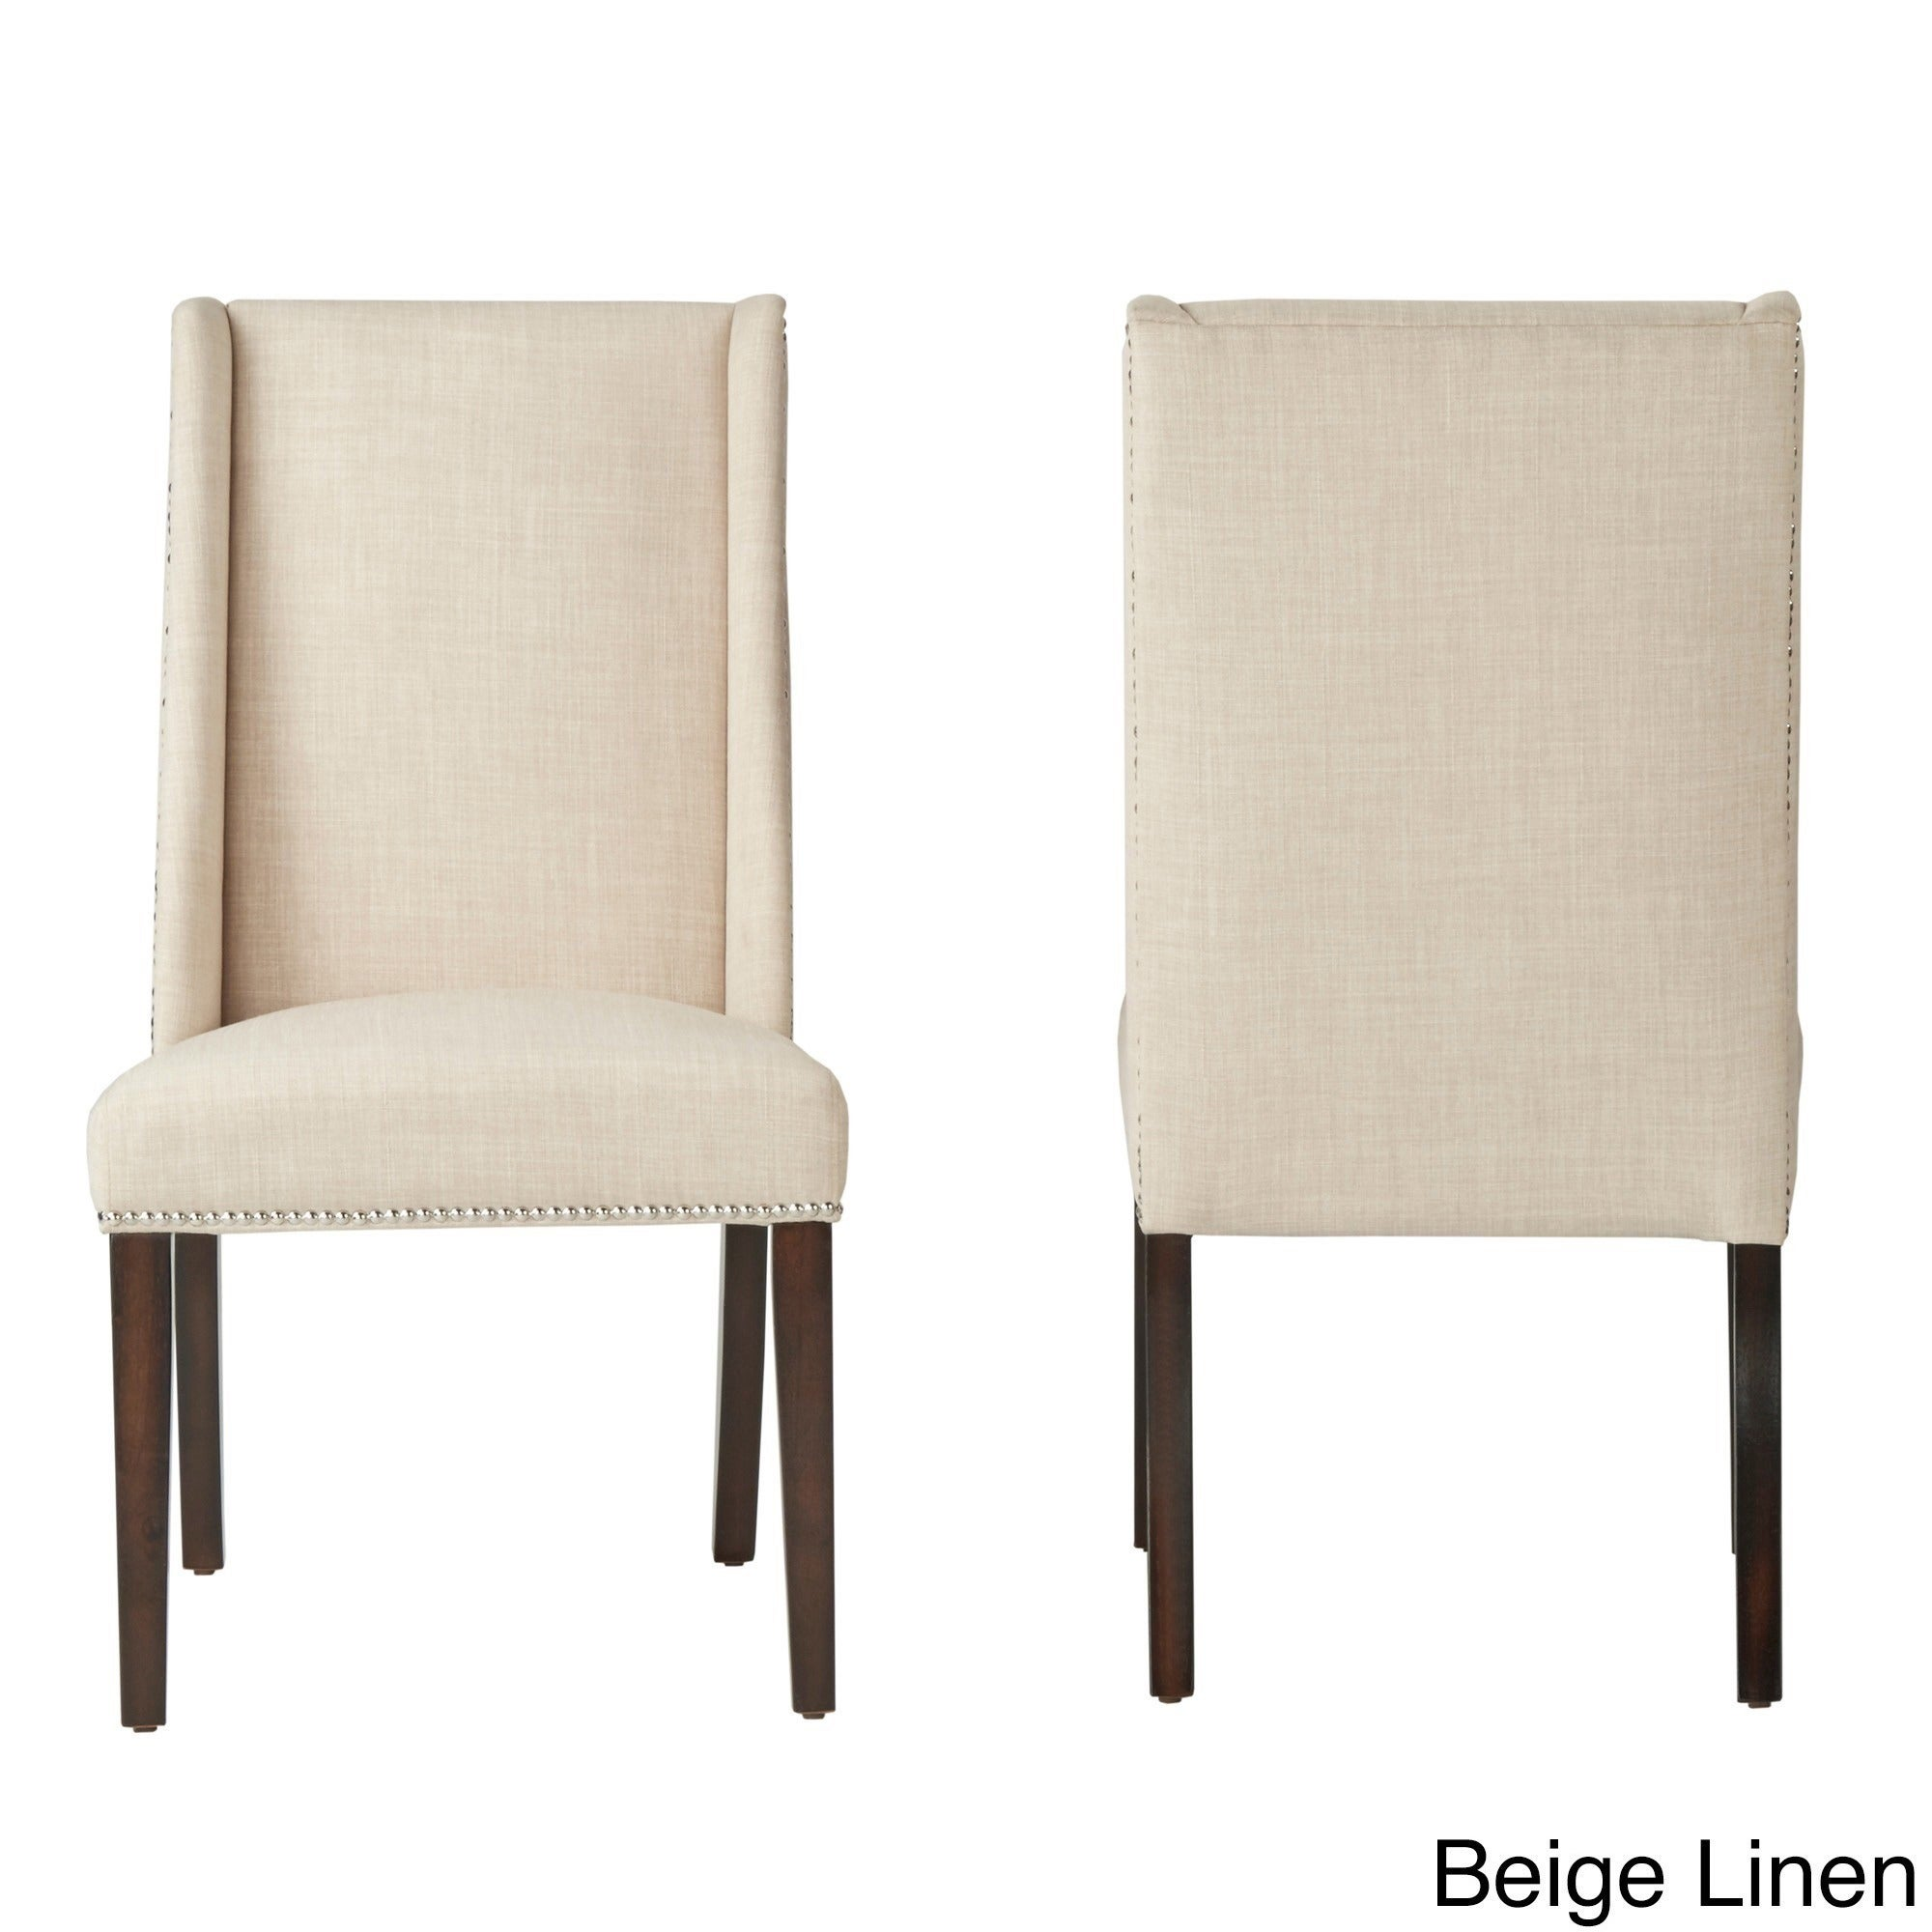 Geneva Wingback Hostess Chairs by iNSPIRE Q Bold (Set of 2) - Free Shipping  Today - Overstock.com - 15851624